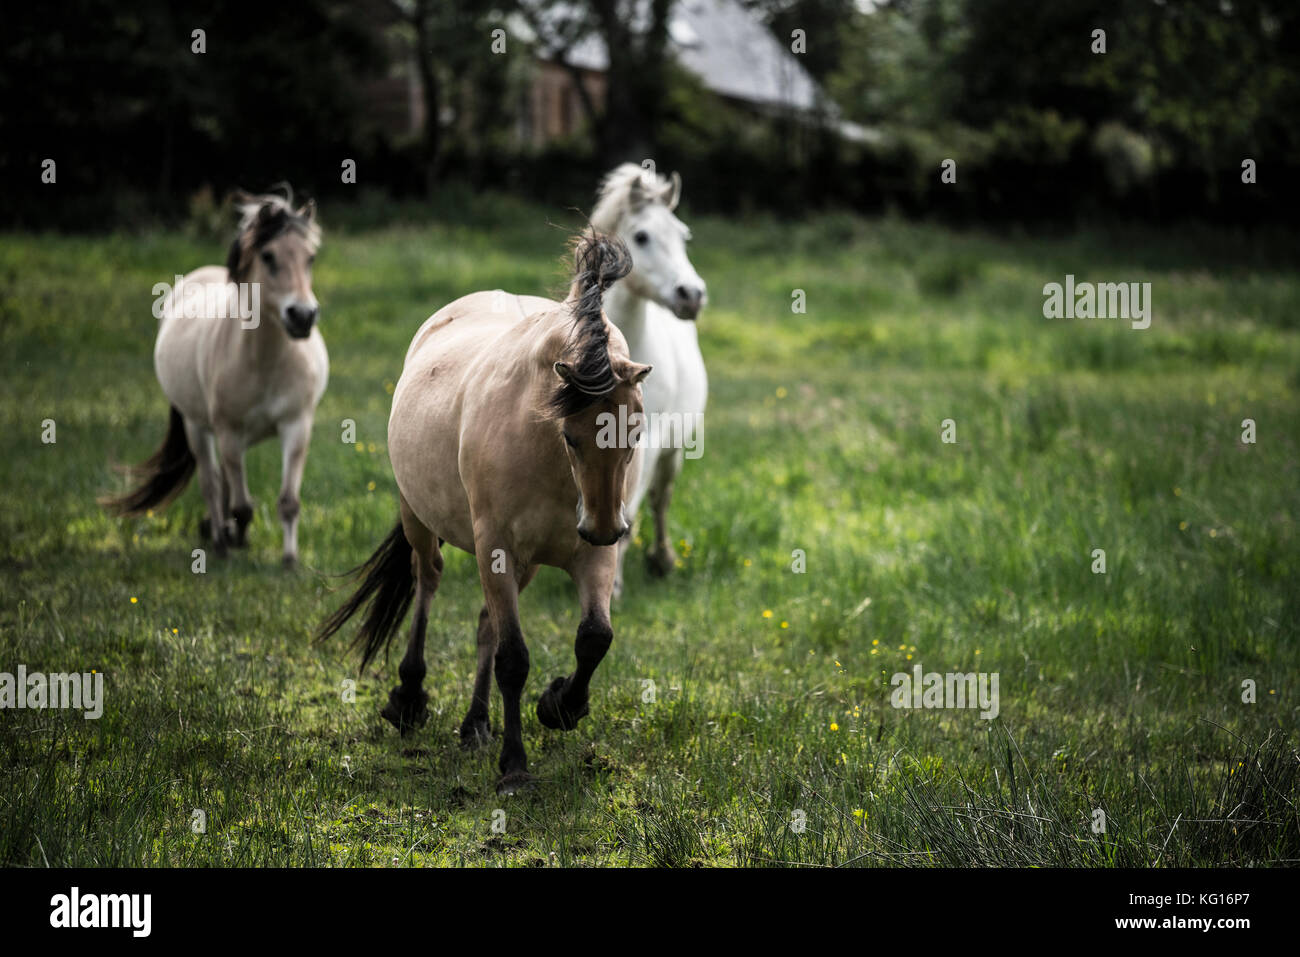 Horses running together at speed in the French countryside - Stock Image